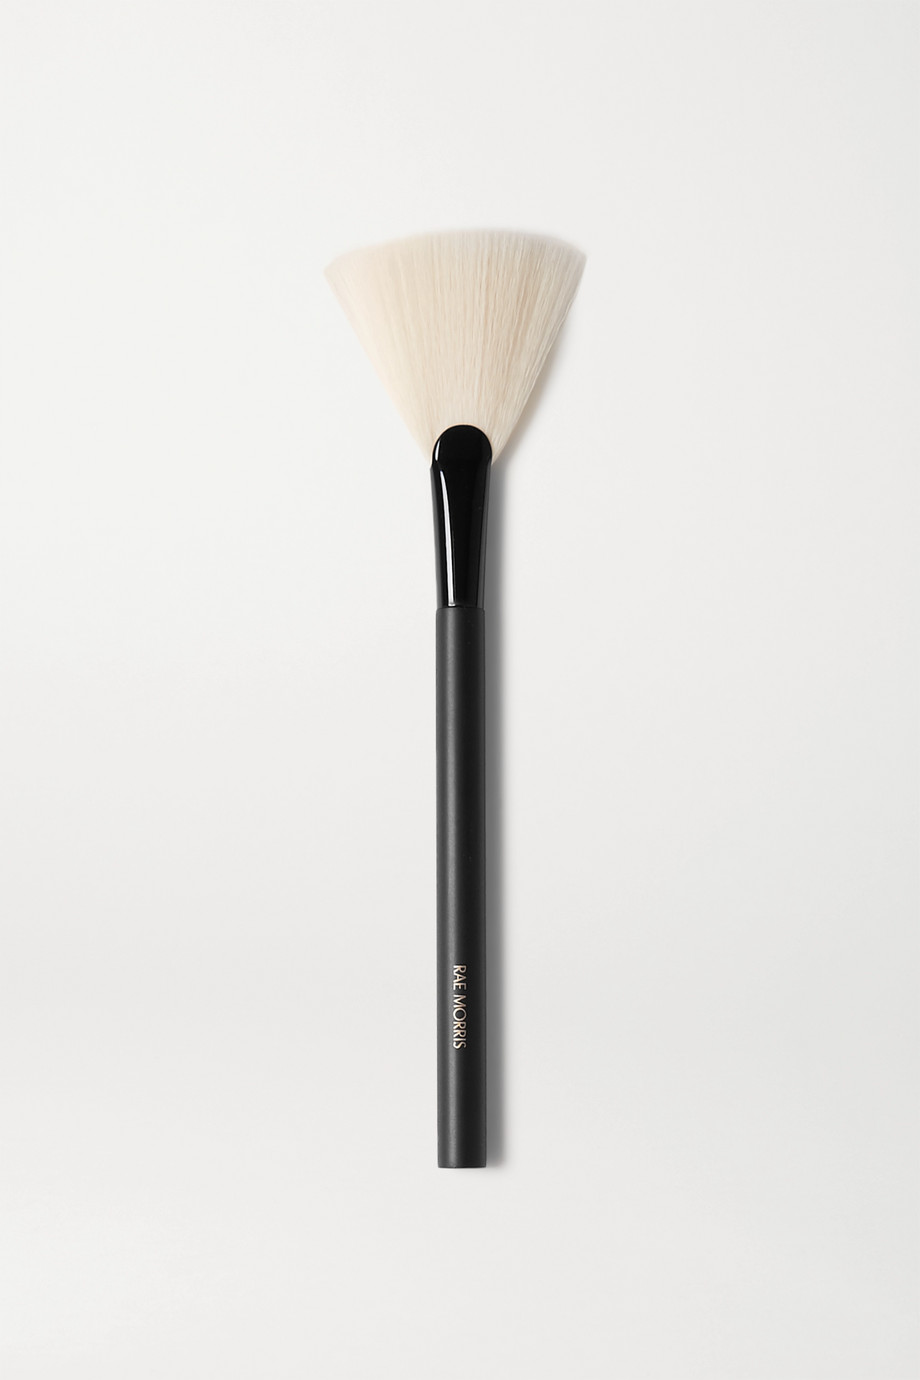 RAE MORRIS Jishaku 25 Fan Highlighter Brush